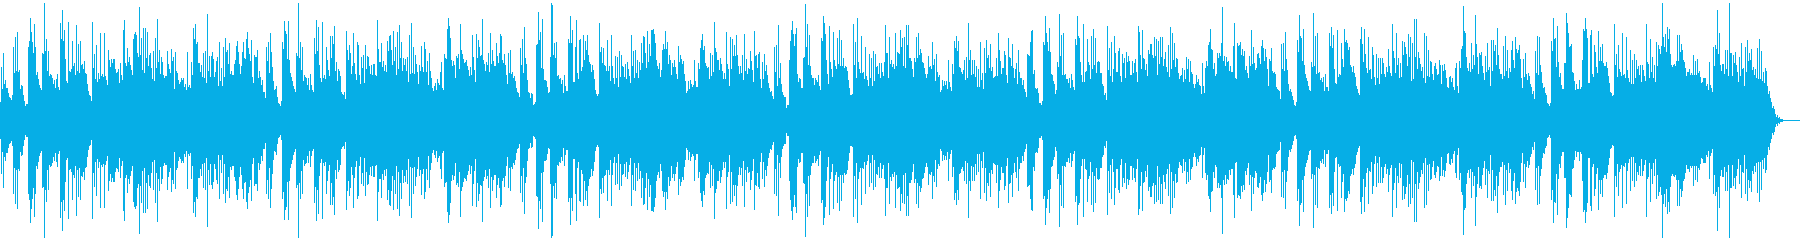 A calm and somewhat boring piano melody's reproduced waveform